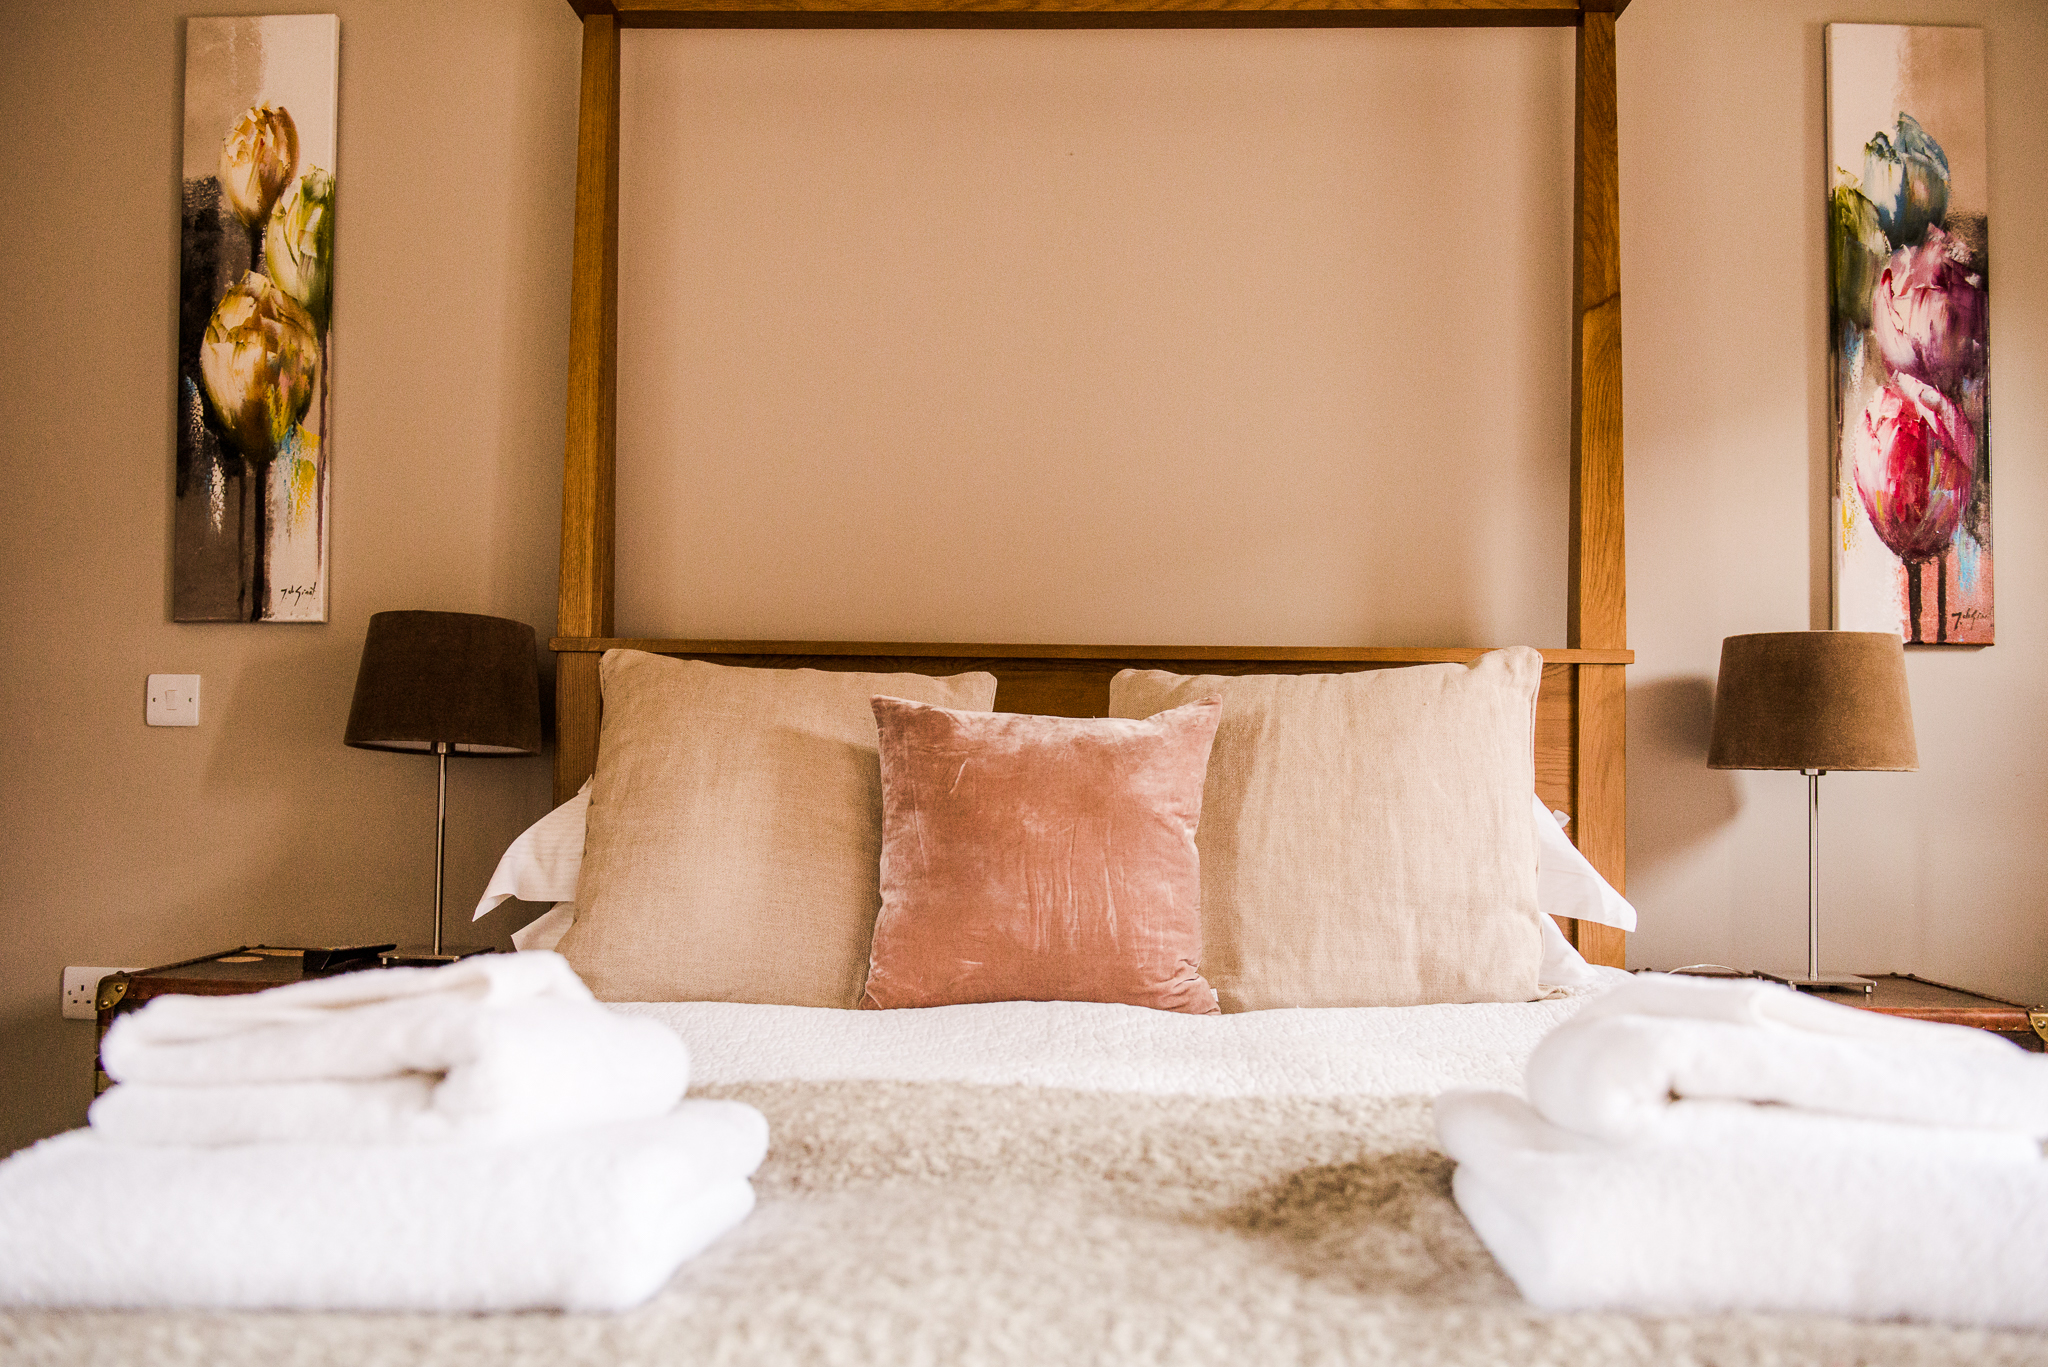 Room 2 - Cosy up in this beautiful and romantic room with direct views of the South National Downs Park. This room has it's own private entrance, a comfortable 4 pilar bed, and a beautiful private bathroom with skylight and the most inviting bath.This room can only be booked as a double.